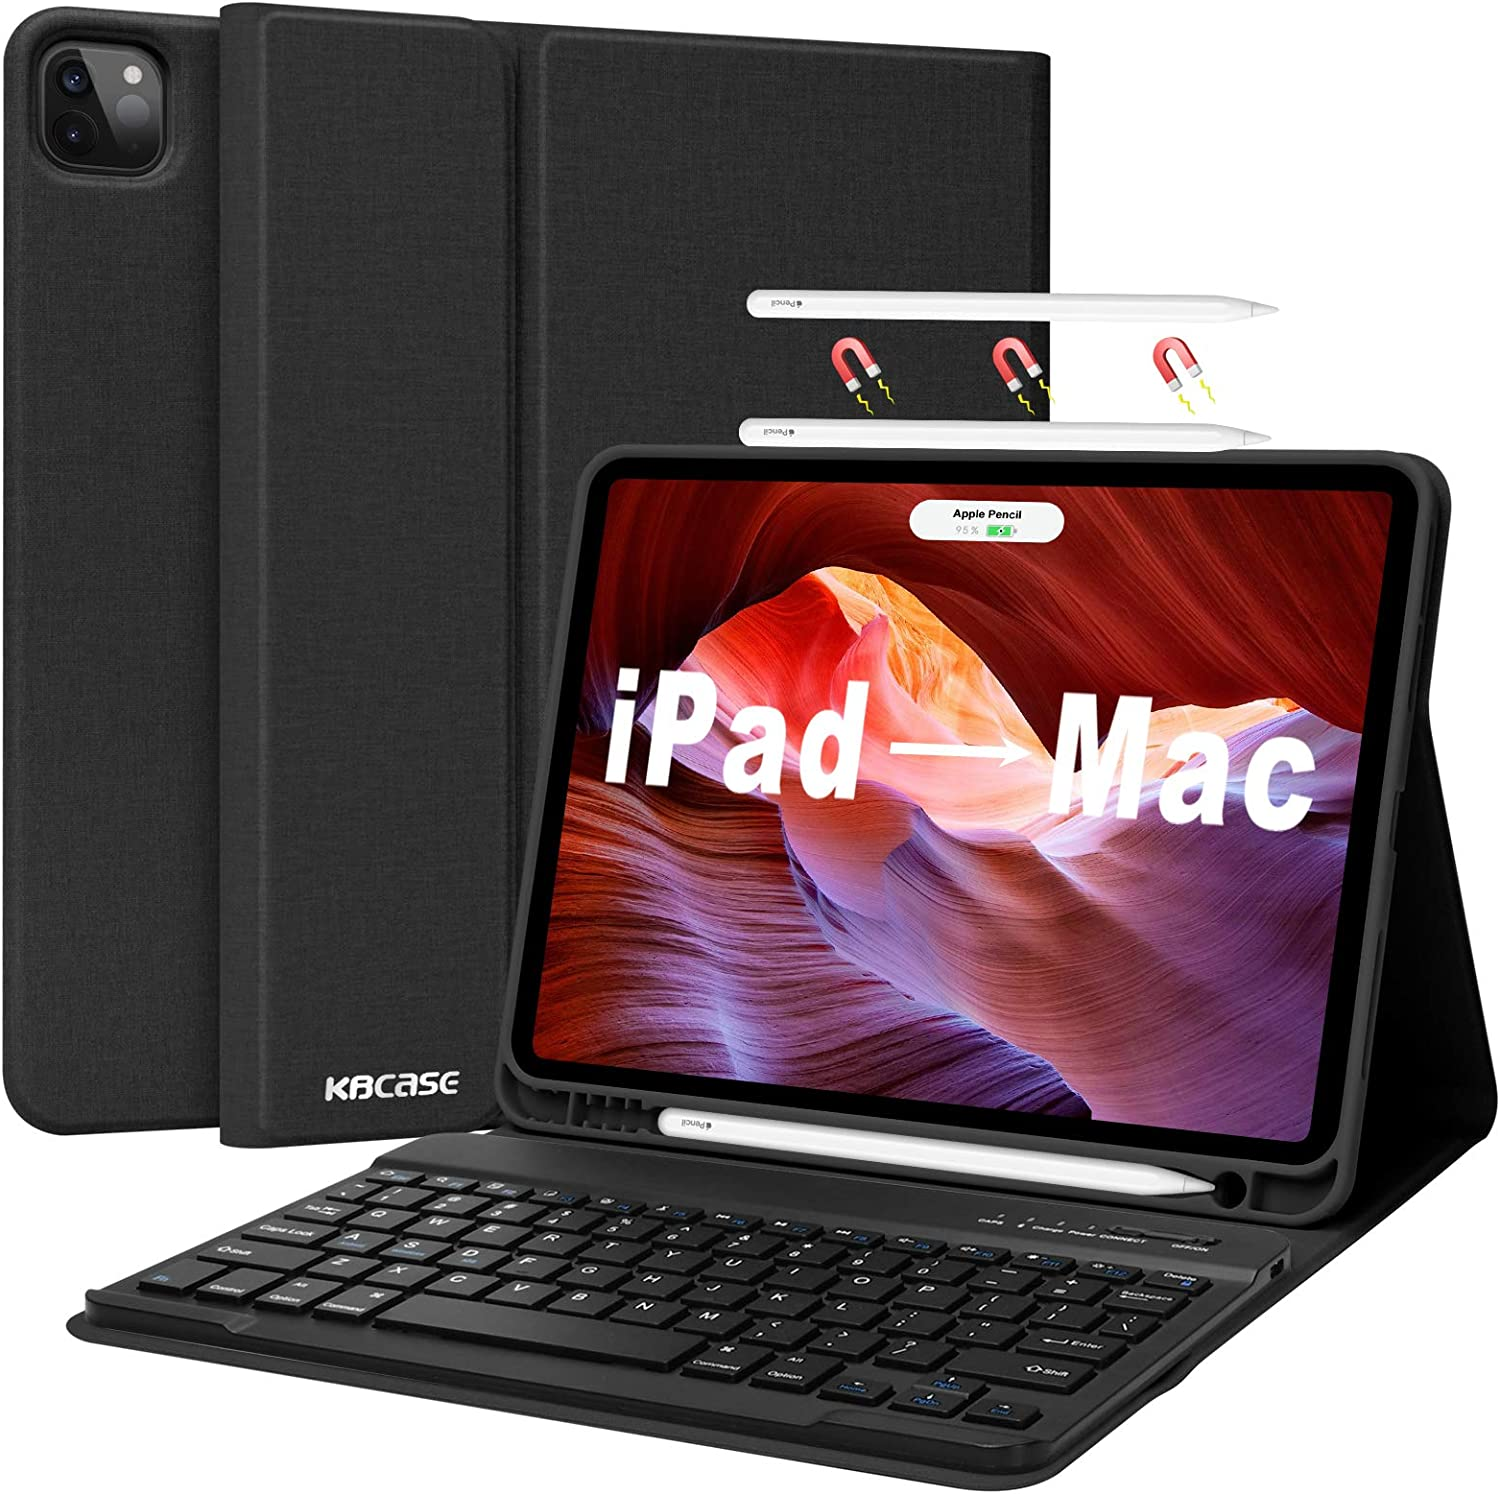 """iPad Case with Keyboard for iPad Pro 11 2021 (3rd Generation), iPad Pro 11 Keyboard Case 2020 2018, Detachable Bluetooth Keyboard with Pencil Holder for iPad 10.9 Air 4th Gen/iPad 11"""" 1st 2nd 3rd"""